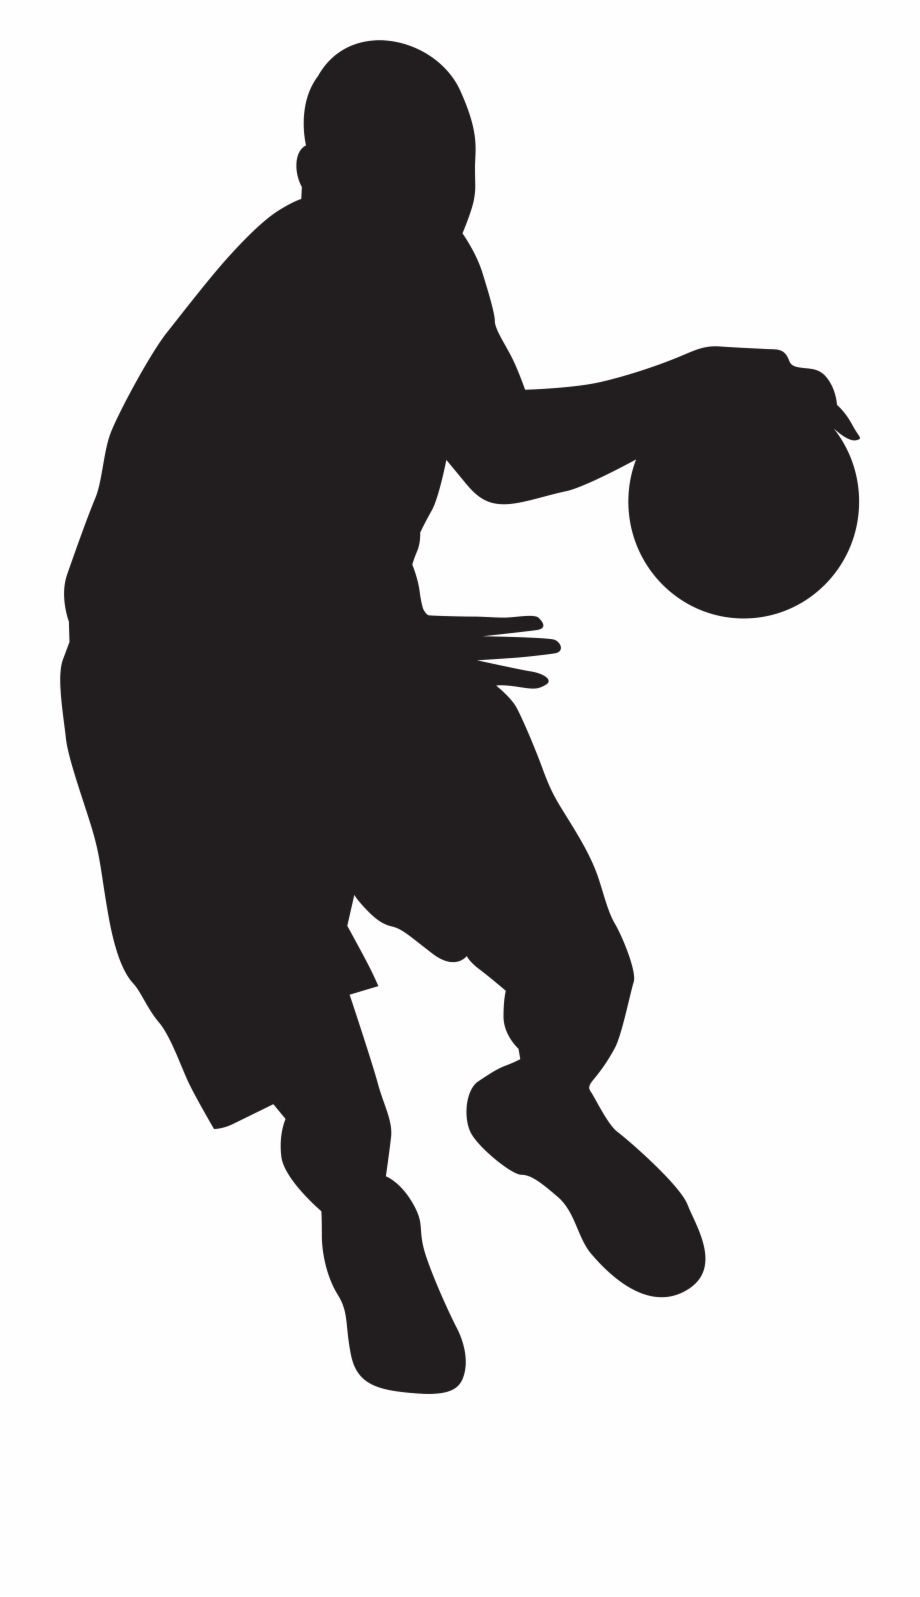 Girl player basketball clipart black and white graphic black and white stock Kids Playing Basketball Black And White Clipart Basketball ... graphic black and white stock